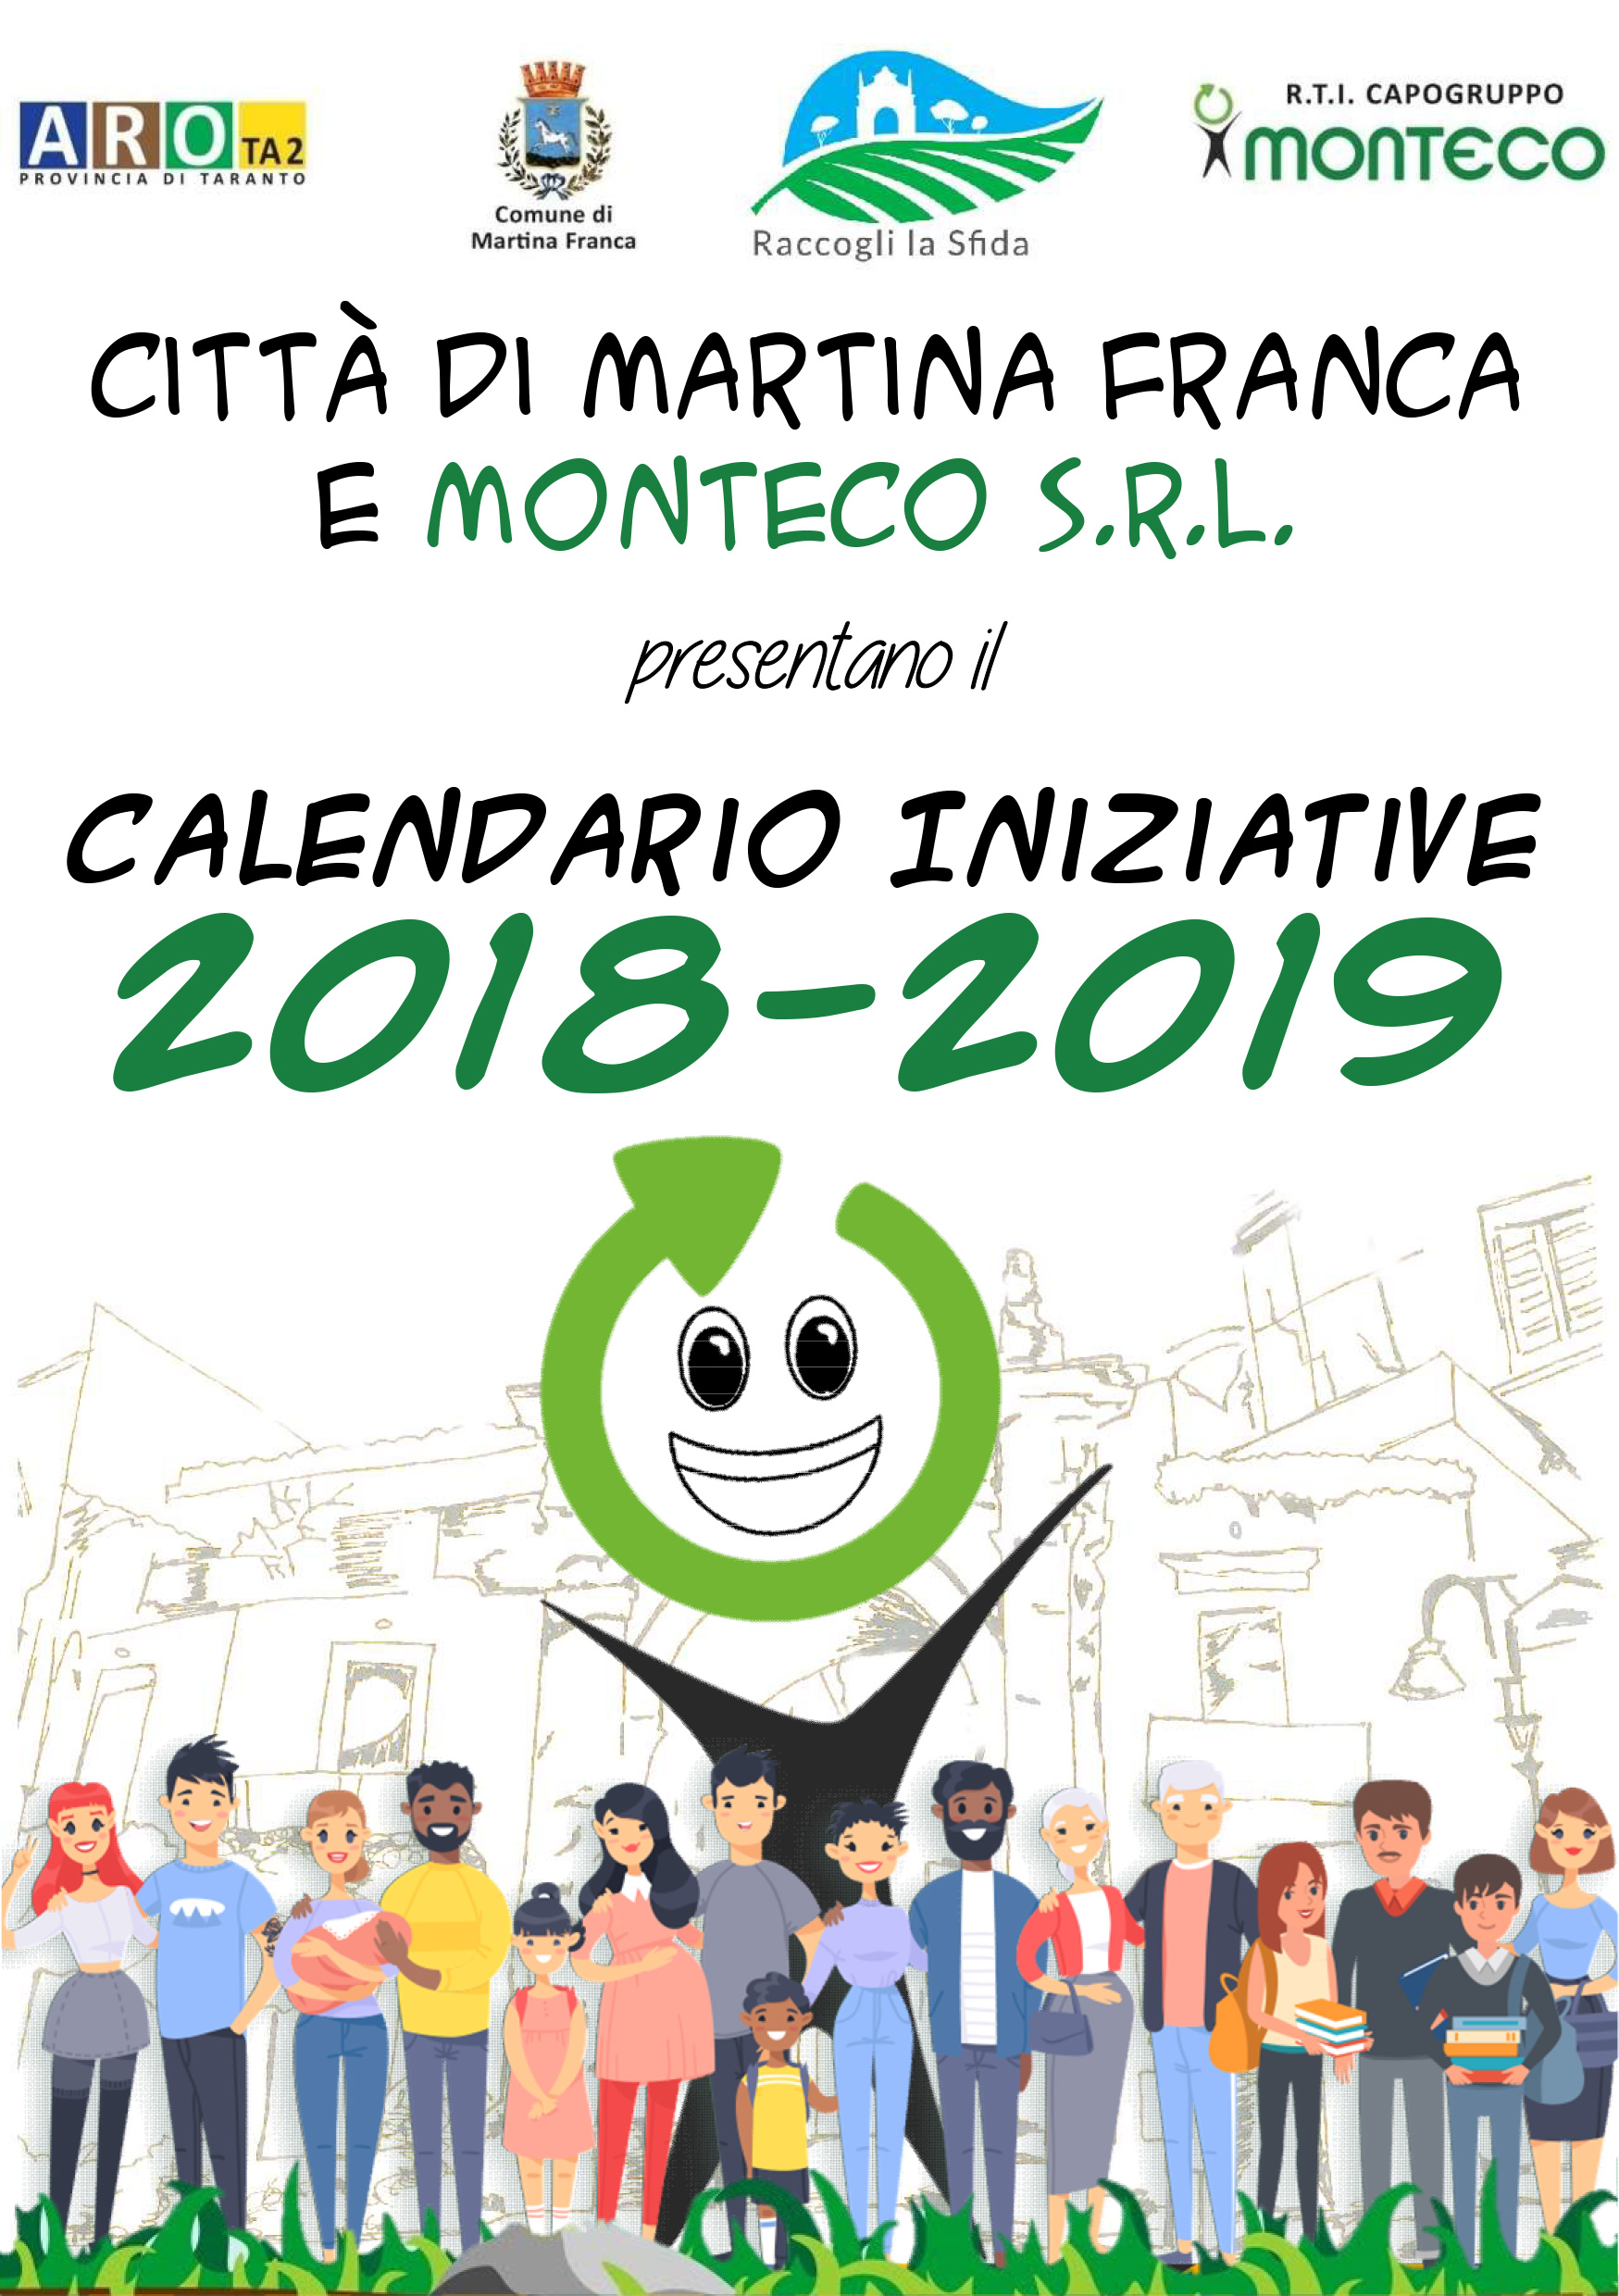 MARTINA FRANCA: CALENDARIO INIZIATIVE 2018-2019